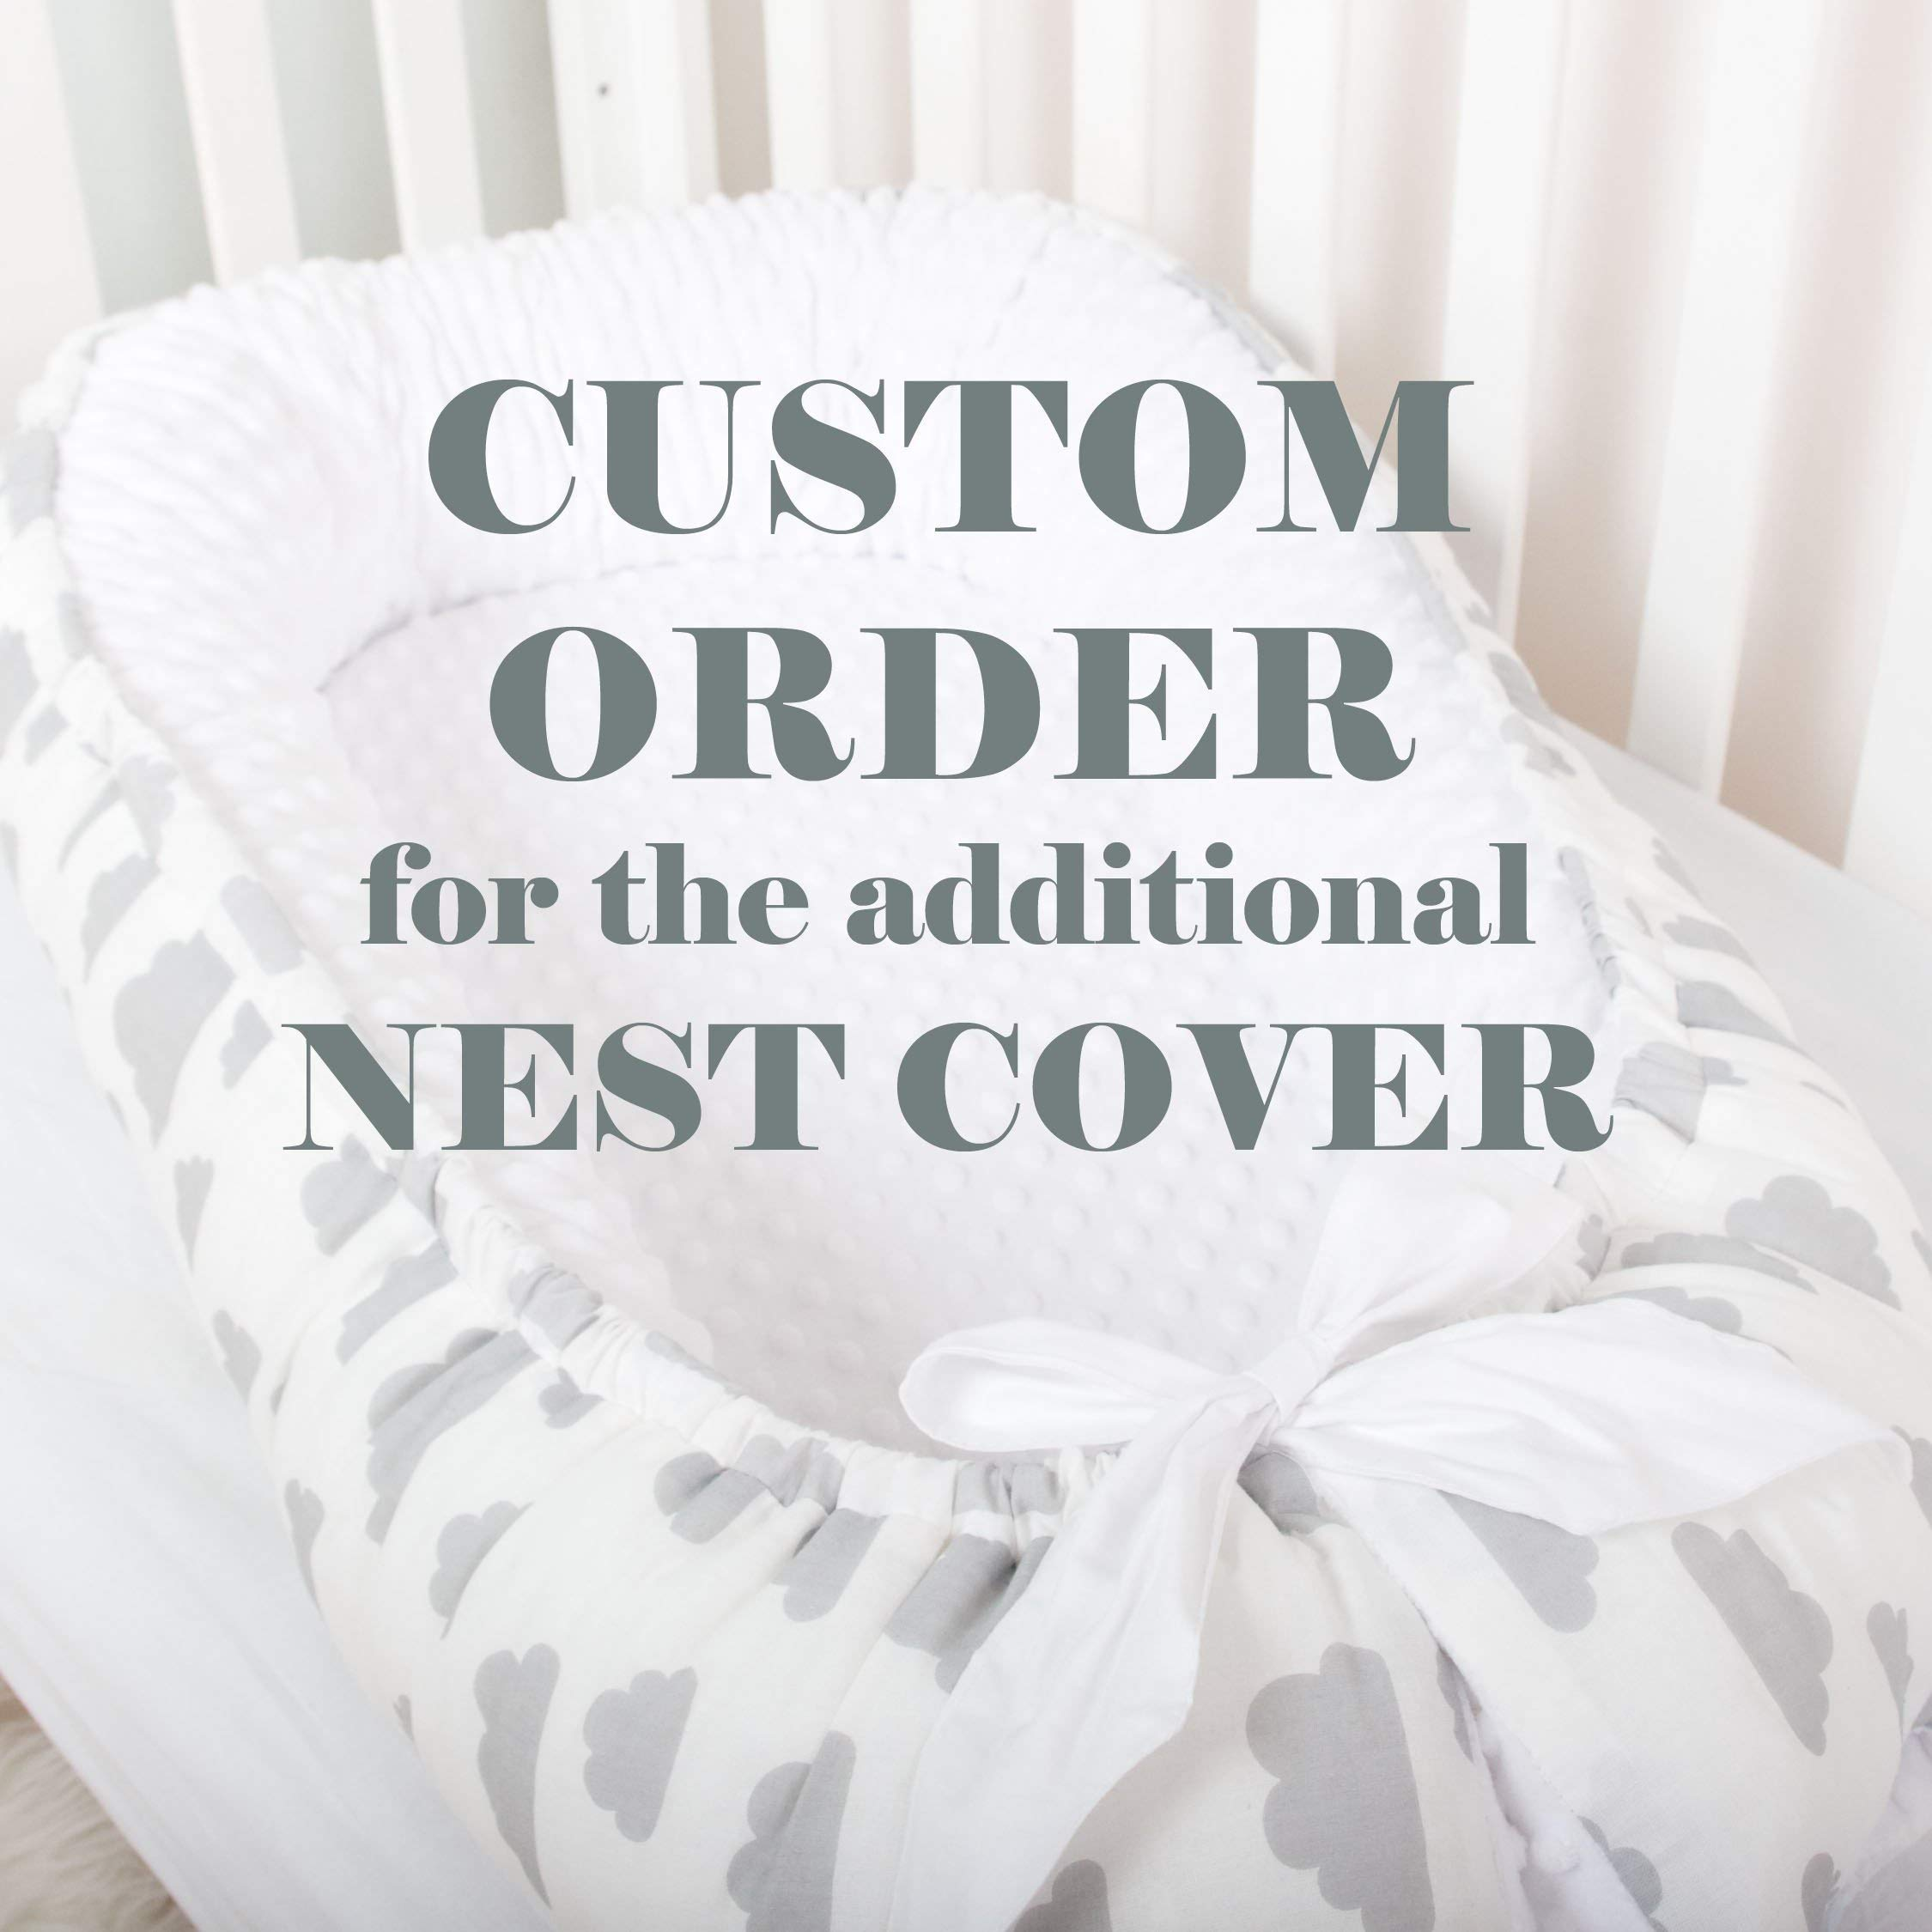 Custom order for the cotton COVER of Baby nest, toddler size nest bed portable crib lounger baby bassinet co sleeper babynest grand bed travel pad pod for newborn co sleeping